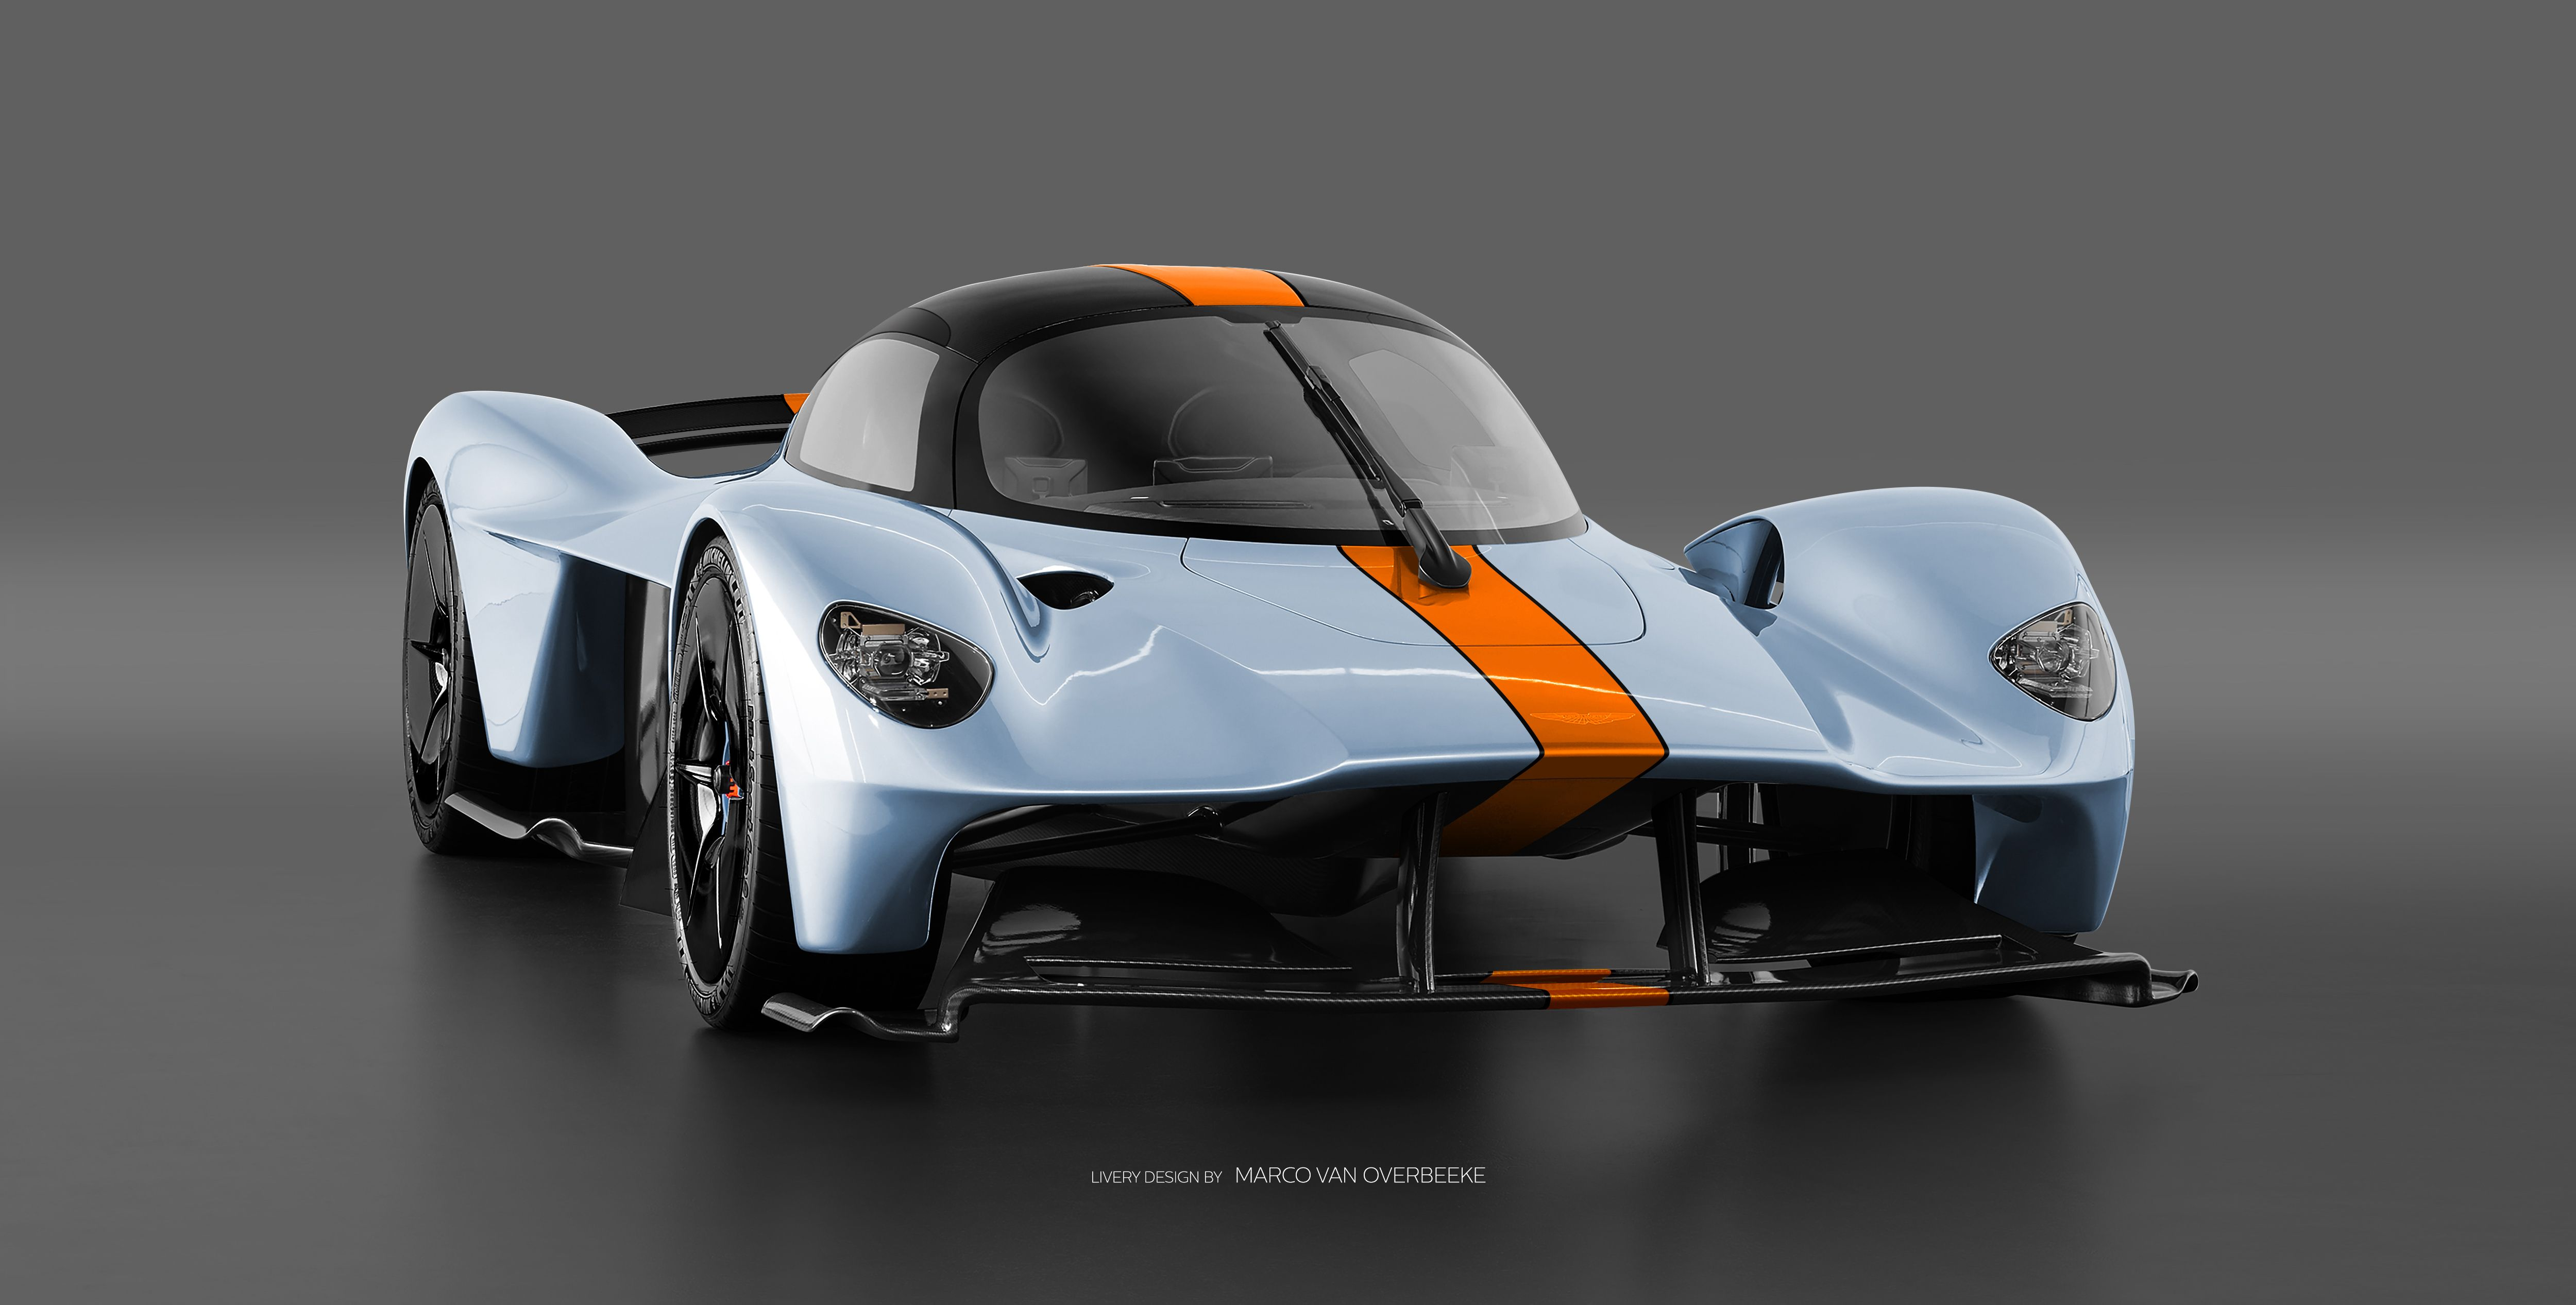 The Aston Martin Valkyrie Looks Especially Good In Classic Racing